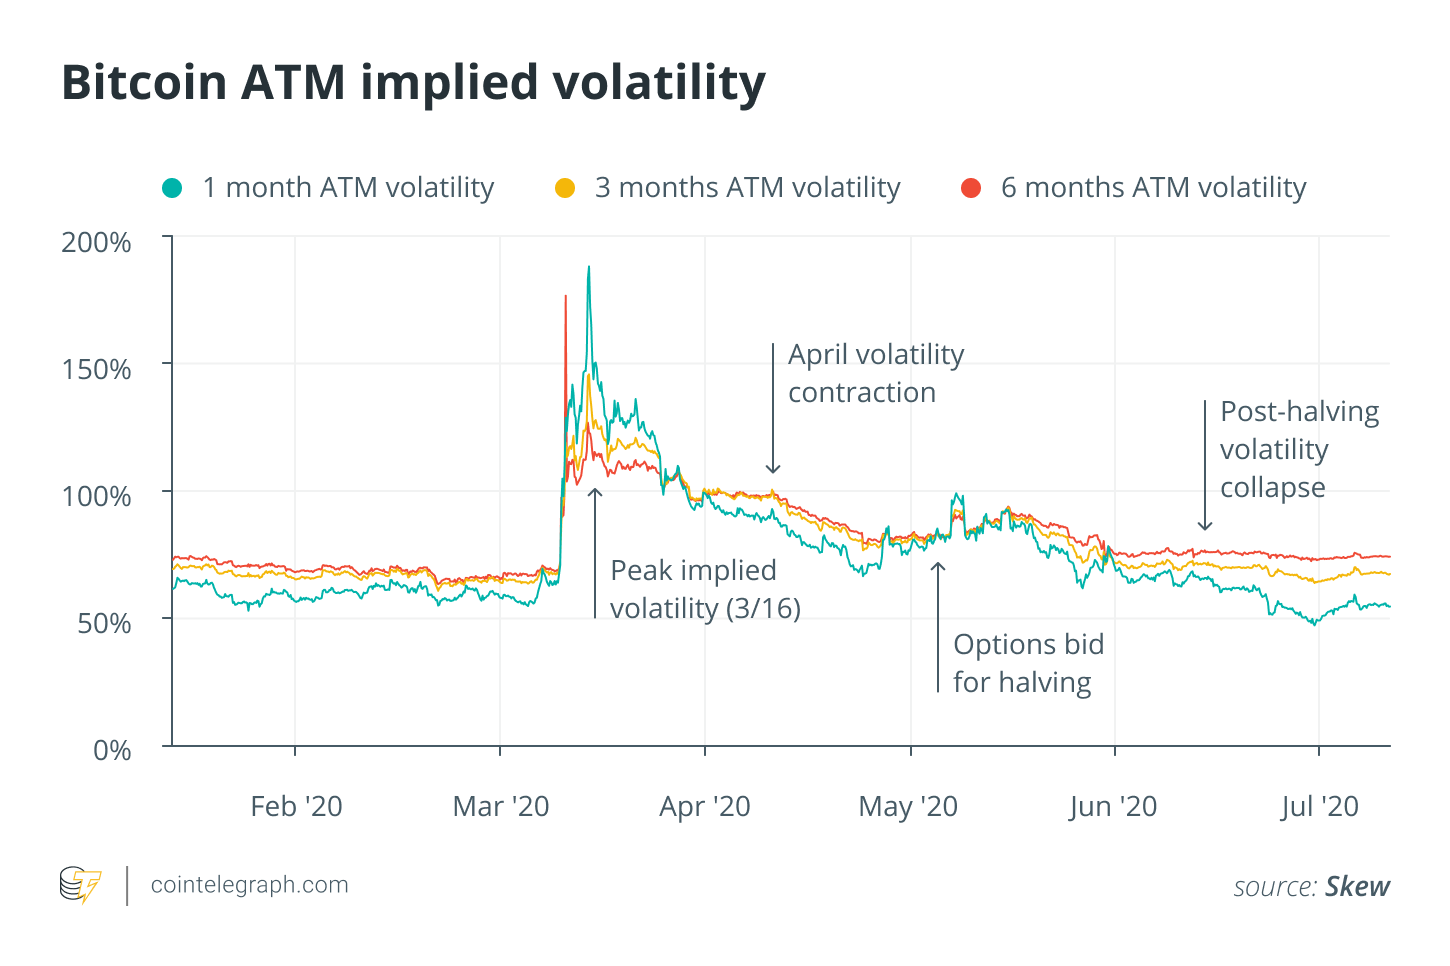 Bitcoin ATM implied volatility